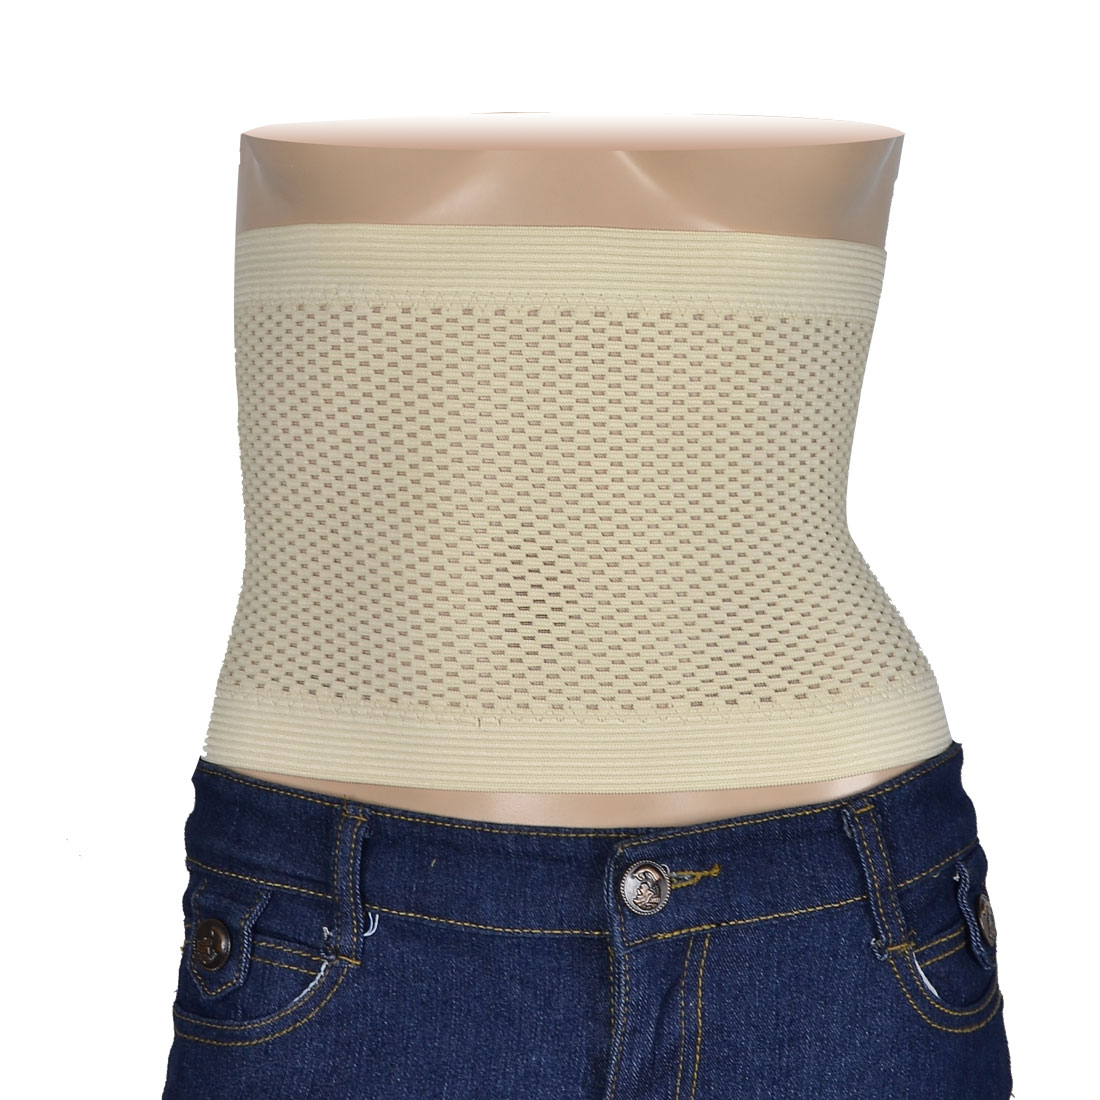 Women 3 Row Eye Hook Holes Style Waist Trimmer Cincher Shaper Beige XL